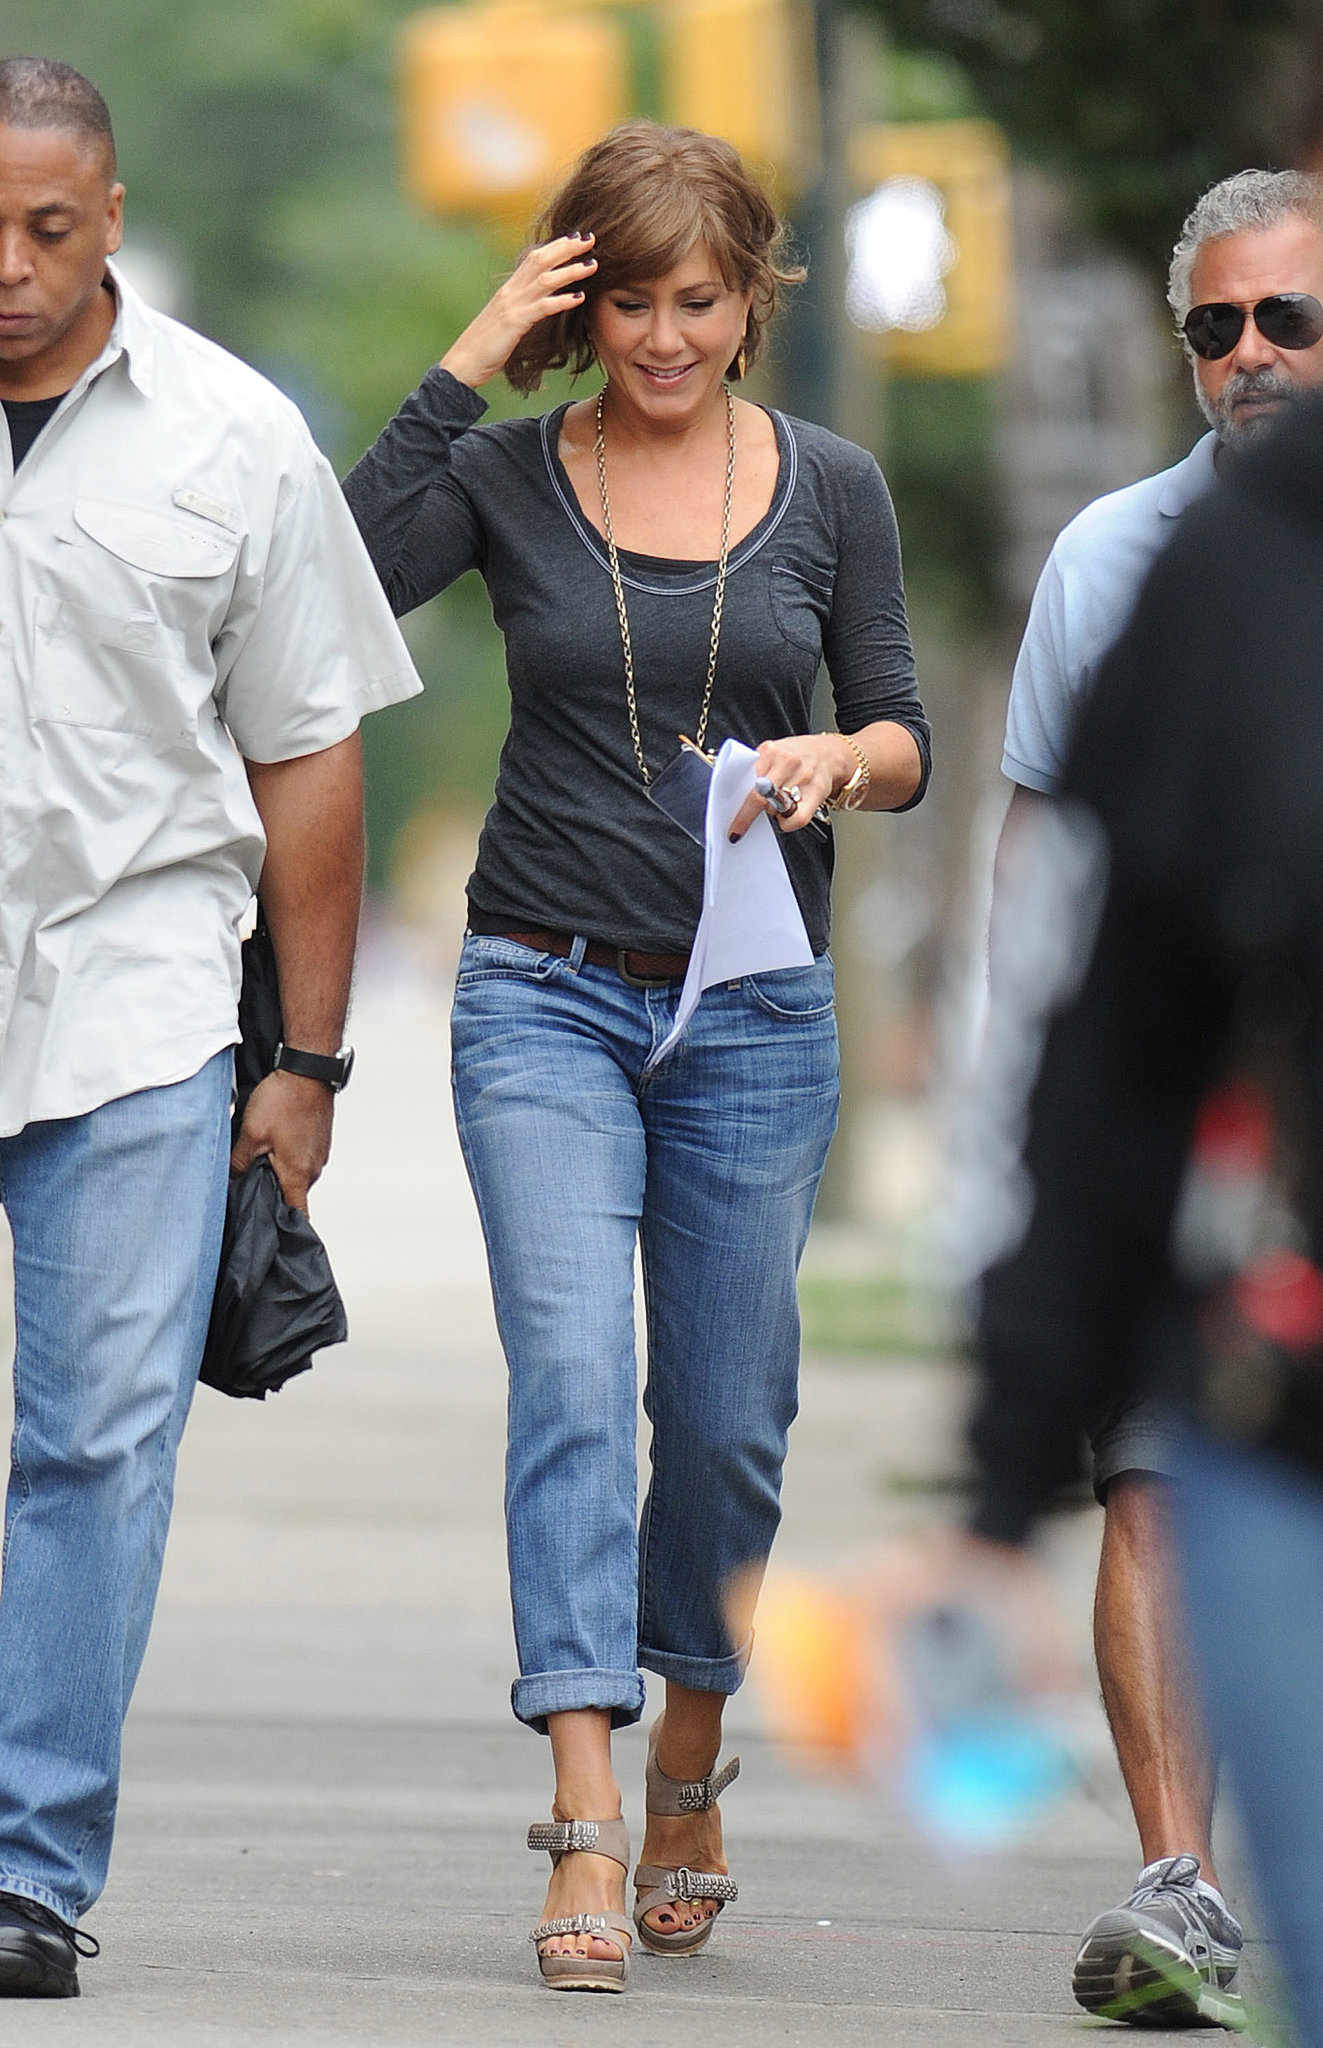 Jennifer Aniston also wore jeans and heels while walking around the set on July 25.